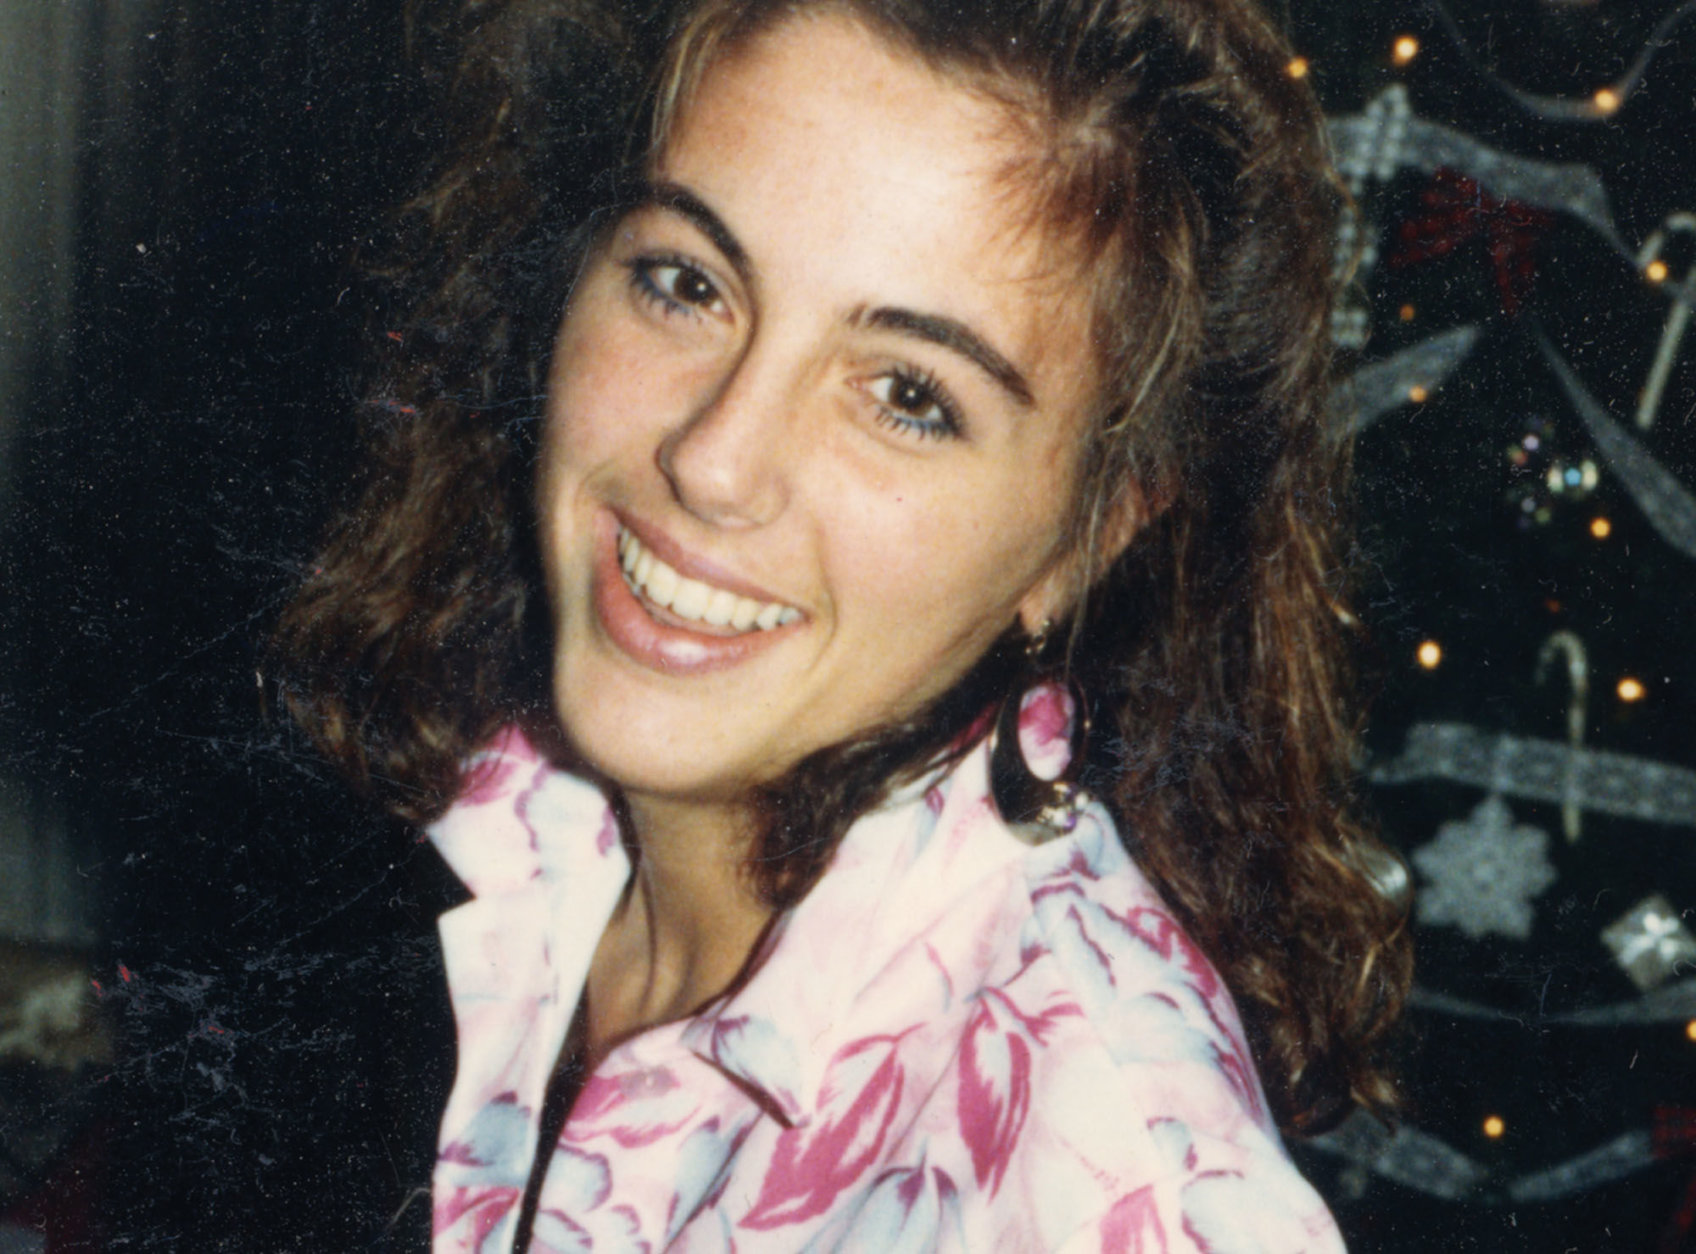 FILE - In this undated photo released by the Schindler family, Terri Schiavo is shown before she suffered catastrophic brain damage that lead to an epic legal battle that involved dozens of judges in numerous jurisdictions, including the U.S. Supreme Court. Terri Schiavo died in 2005. As Jeb Bush, then the Governor of Florida,  prepares for a likely presidential bid, one name seems destined to loom large over his potential campaign: Terri Schiavo. The battle over the fate of the brain-damaged woman from the Tampa Bay-area was a defining moment in Bush's governorship, and two events this week suggested that his controversial intervention to keep her alive will remain a political flashpoint. (AP Photo/Schindler Family Photo, File)  NO SALES